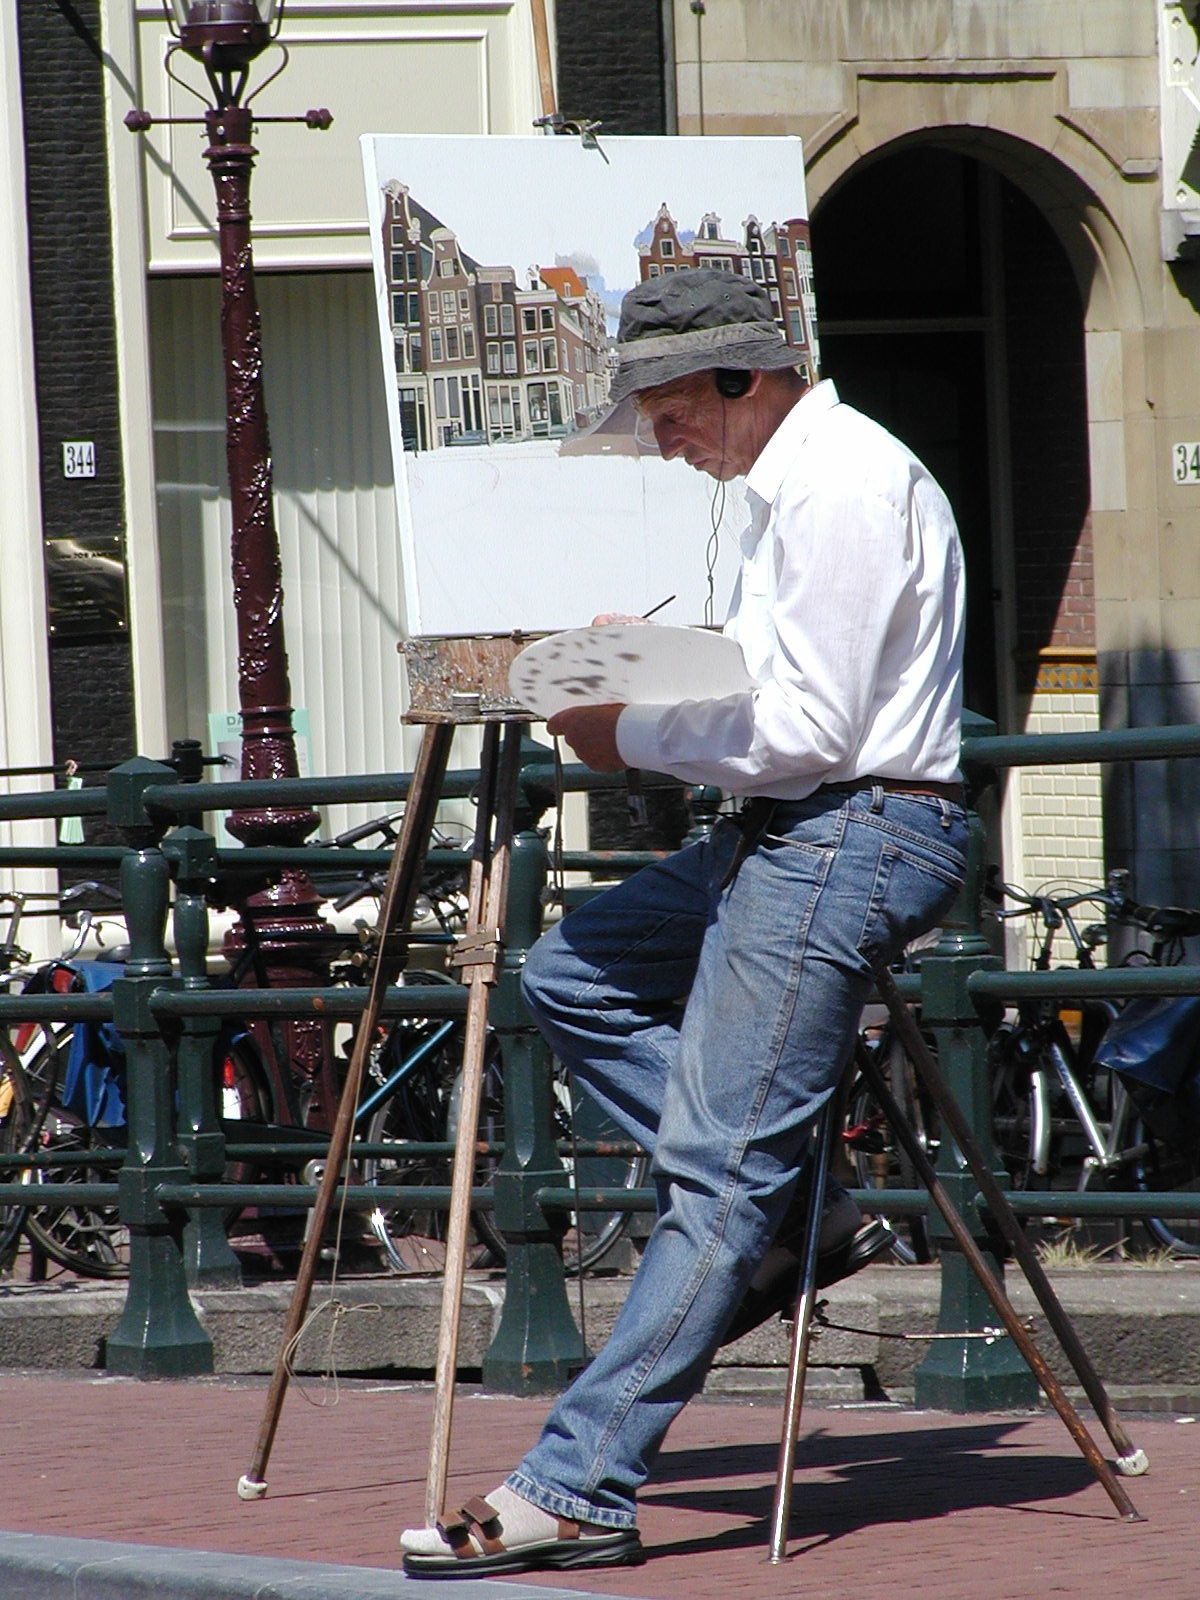 art in progress author lucke charlie there is a